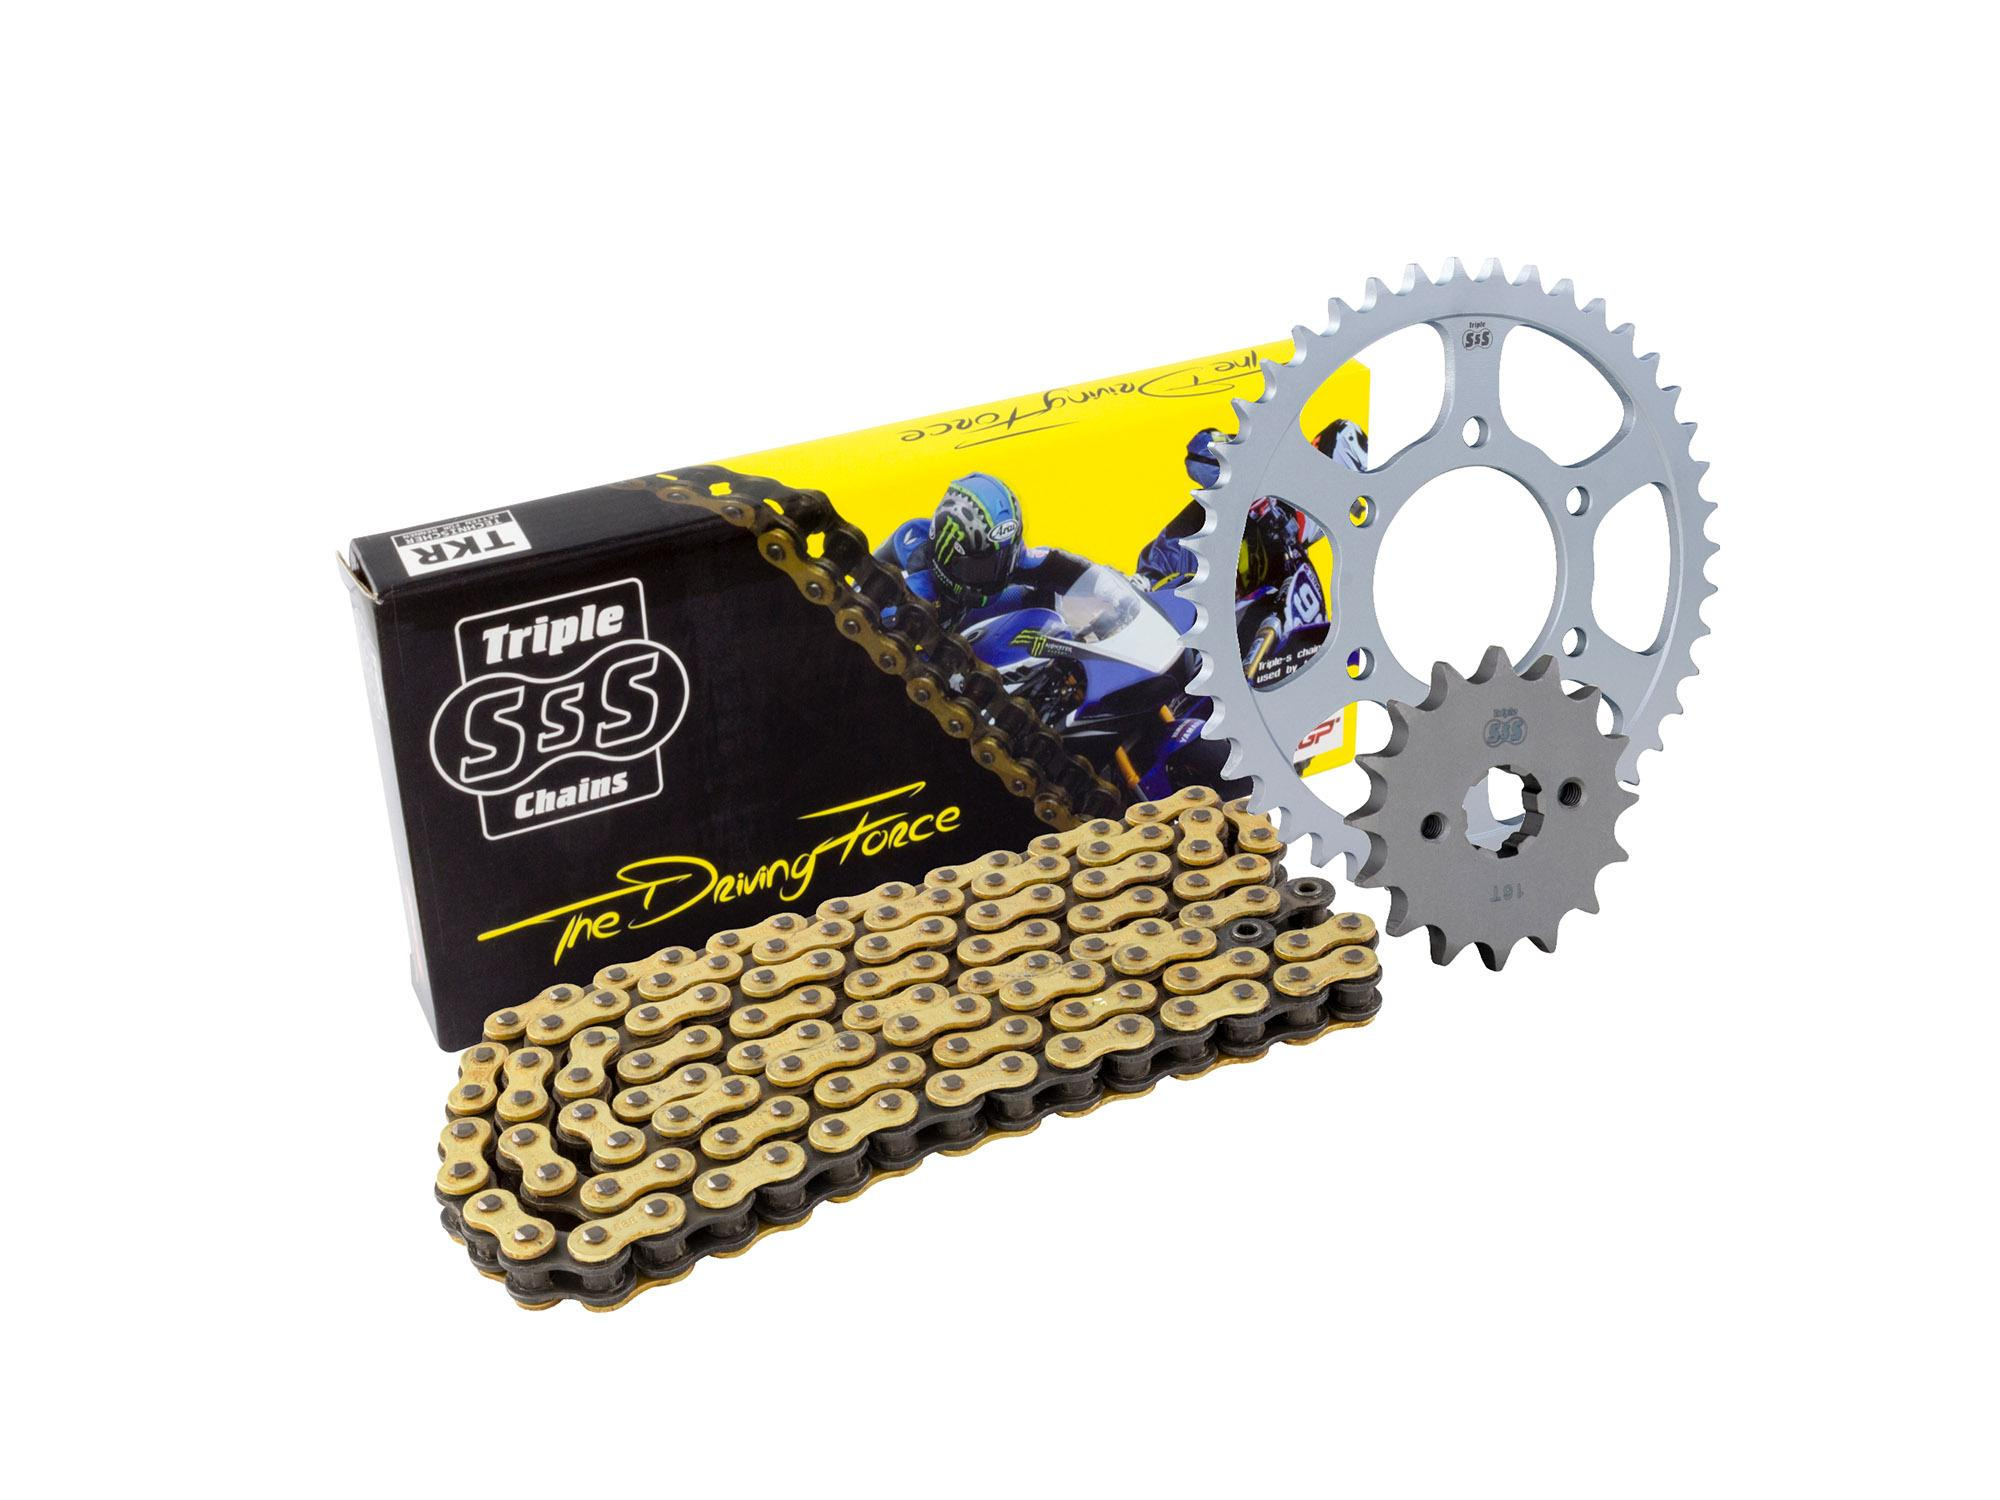 Suzuki GSF1200 Bandit SA-K6 06 Chain & Sprocket Kit: 15T Front, 45T Rear, HD O-Ring Gold Chain 530H 116 Link